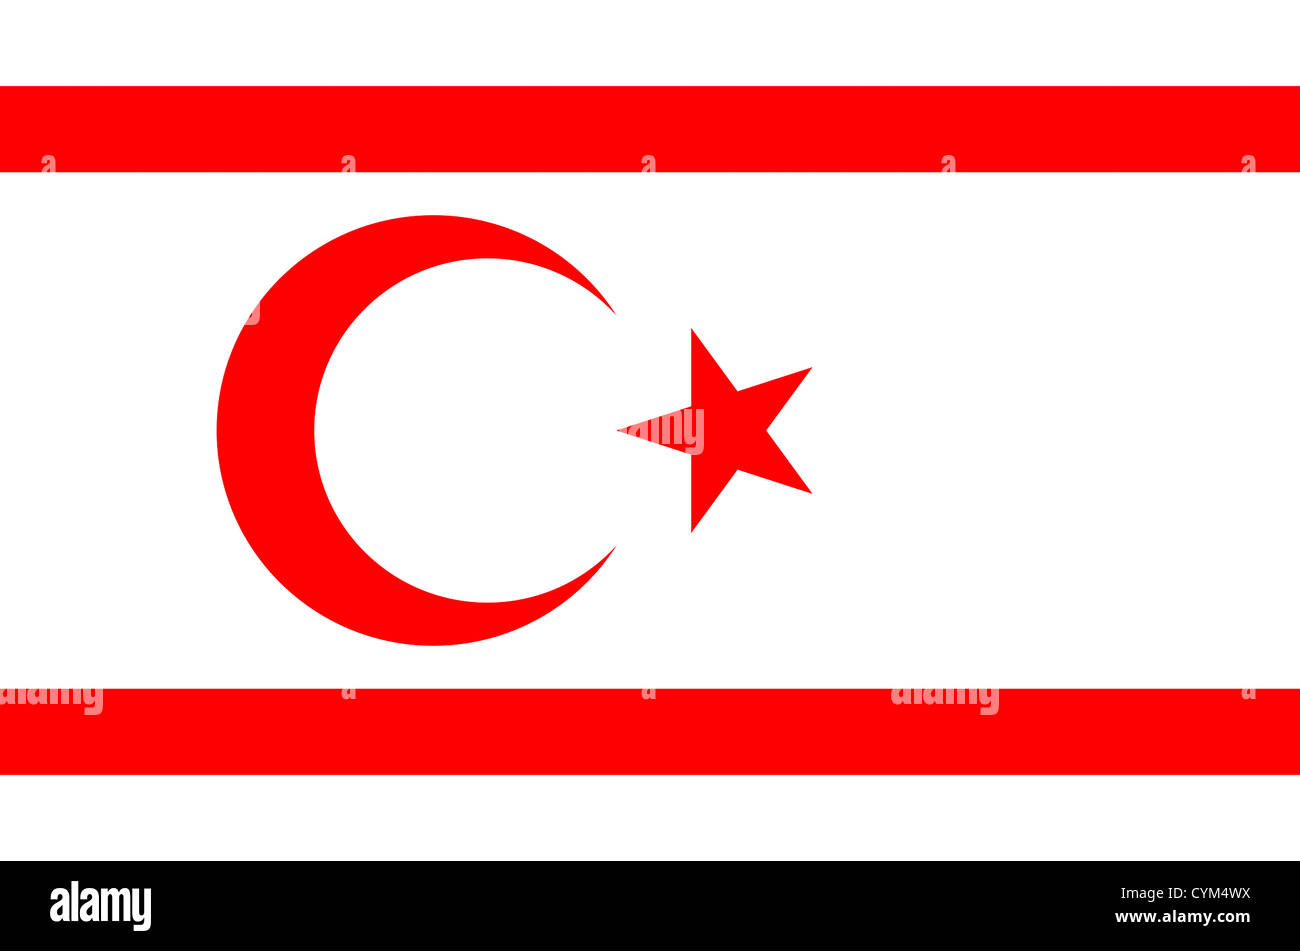 Flag of the Turkish Republic of Northern Cyprus - North Cyprus. - Stock Image